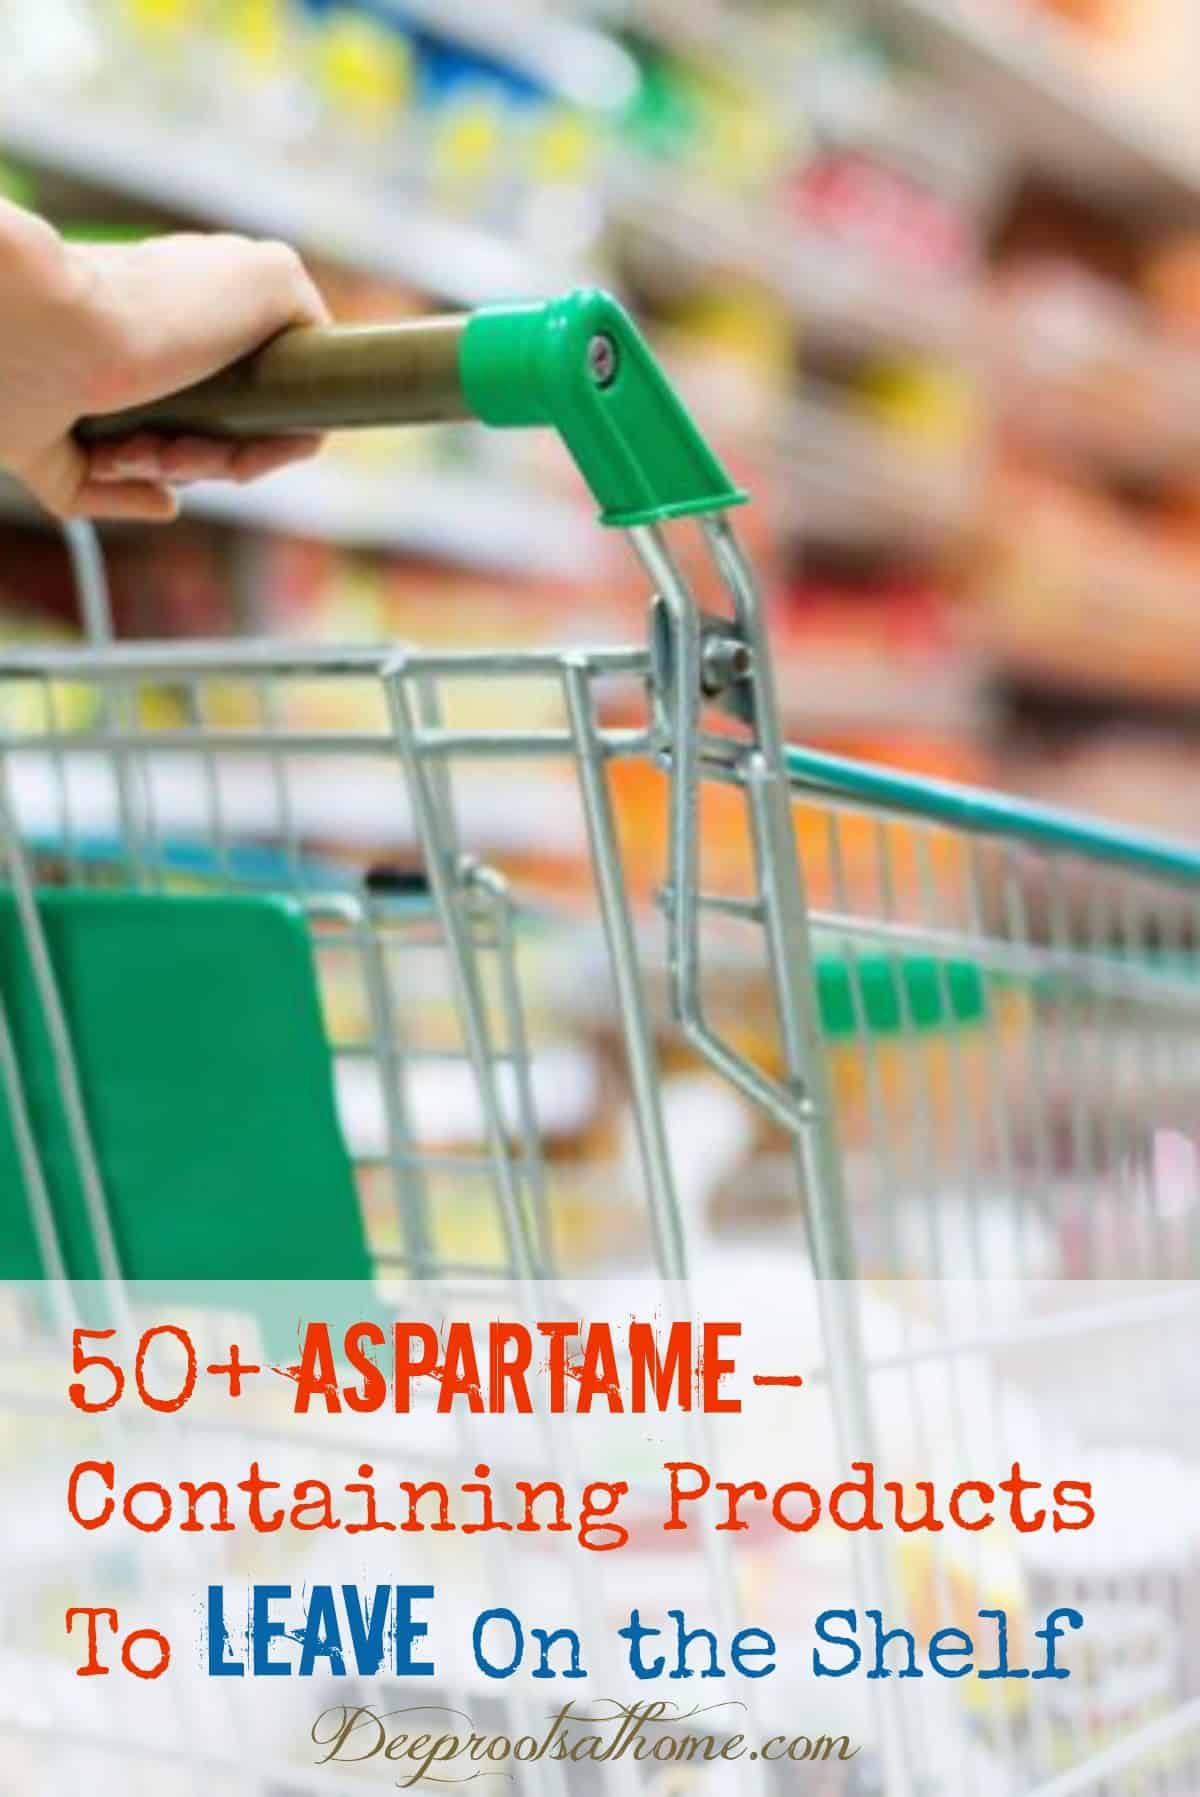 50+ Aspartame-Containing Products To Avoid. A label-reading shopper pushing a green steel shopping cart in the grocery.